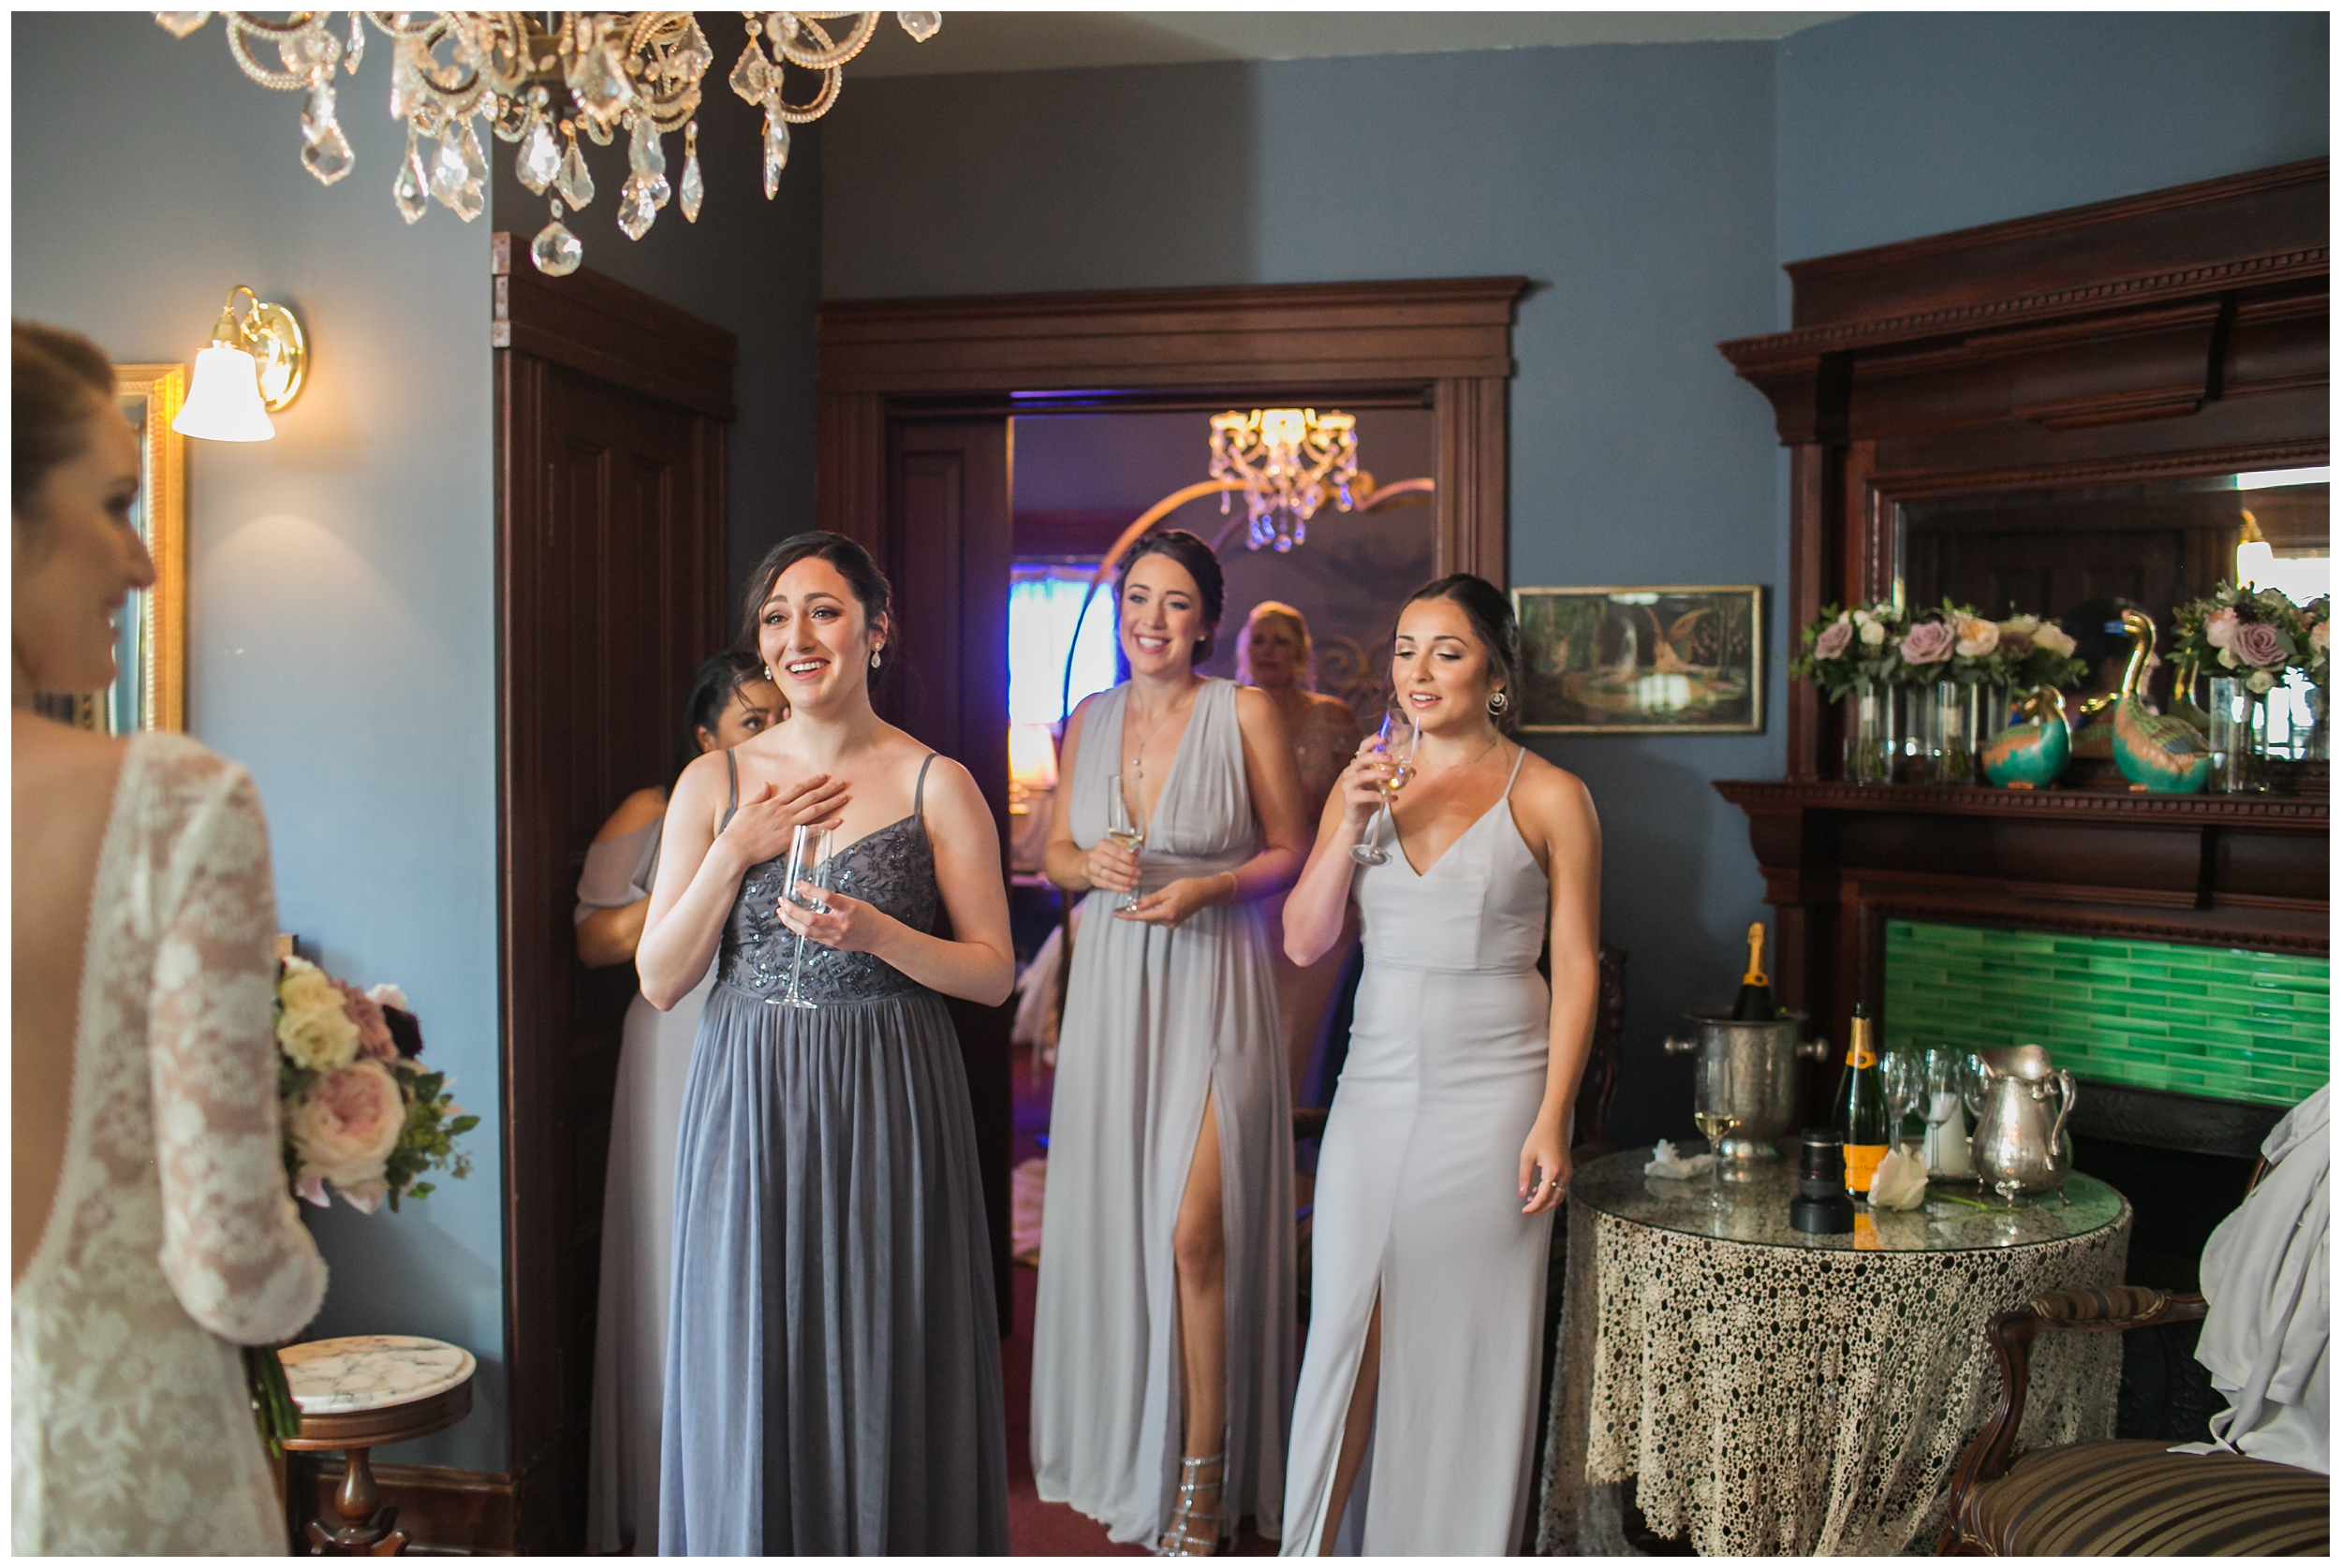 chic-christmas-house-wedding-getting-ready-carrie-vines-_0011.jpg